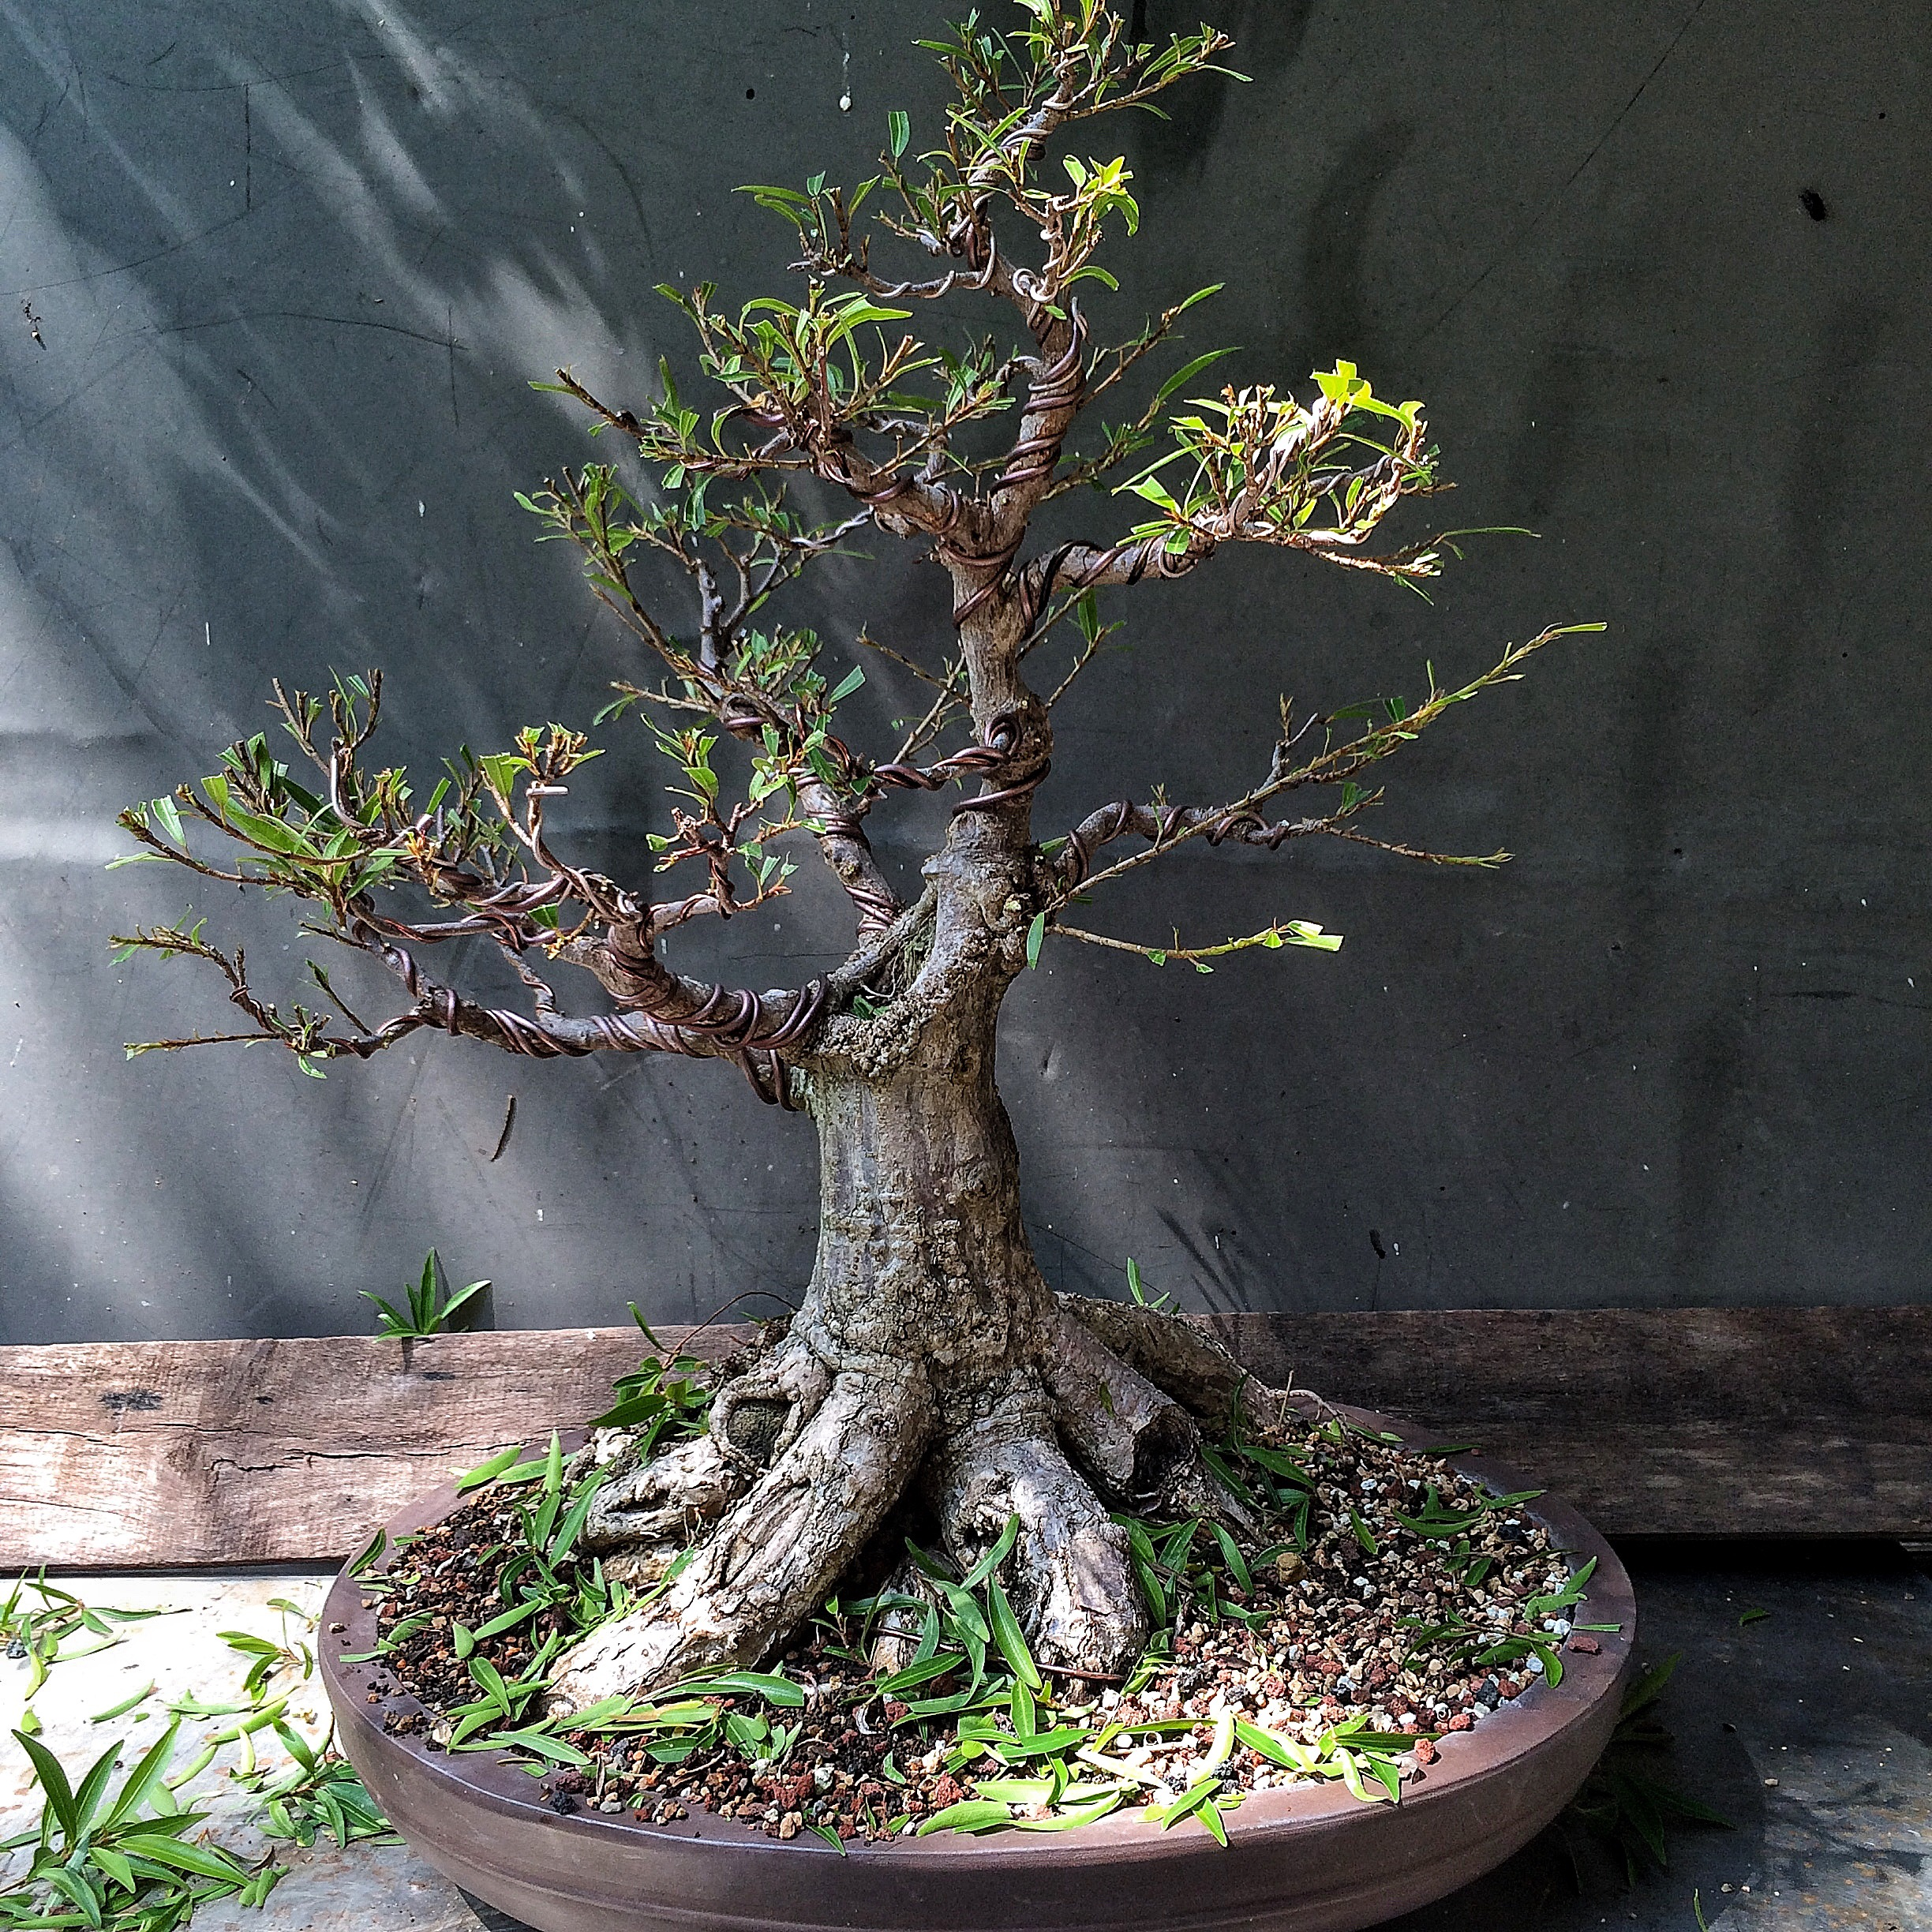 Groovy Cracked Pots Wire Scars Ficus In Focus And Some Philosophy Wiring 101 Akebretraxxcnl